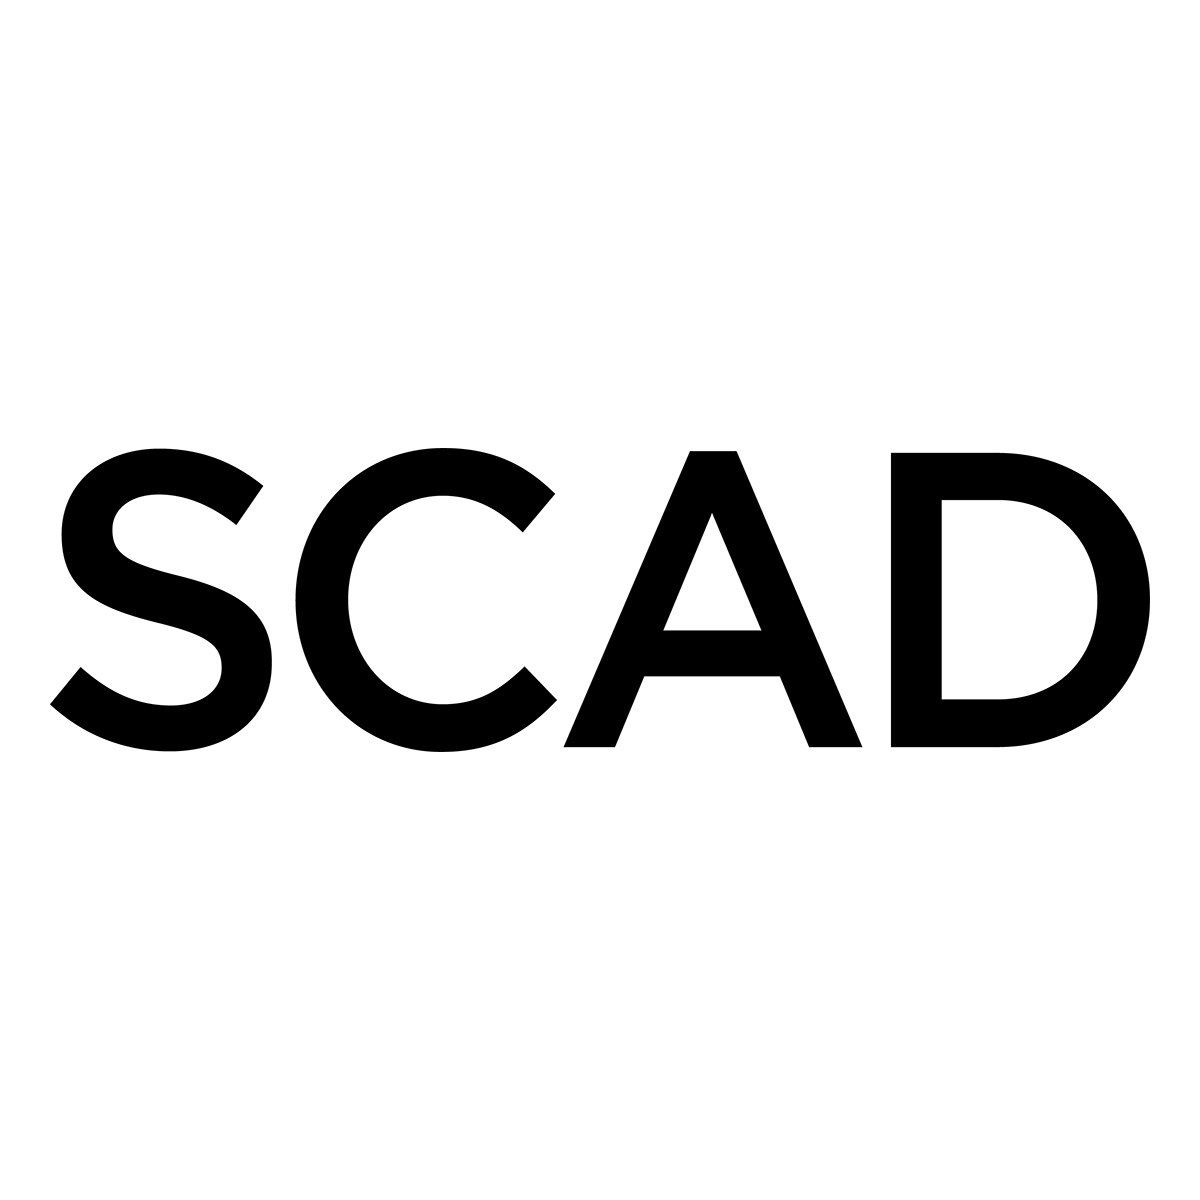 SCAD Partners with Lextant to Launch New Certification Program